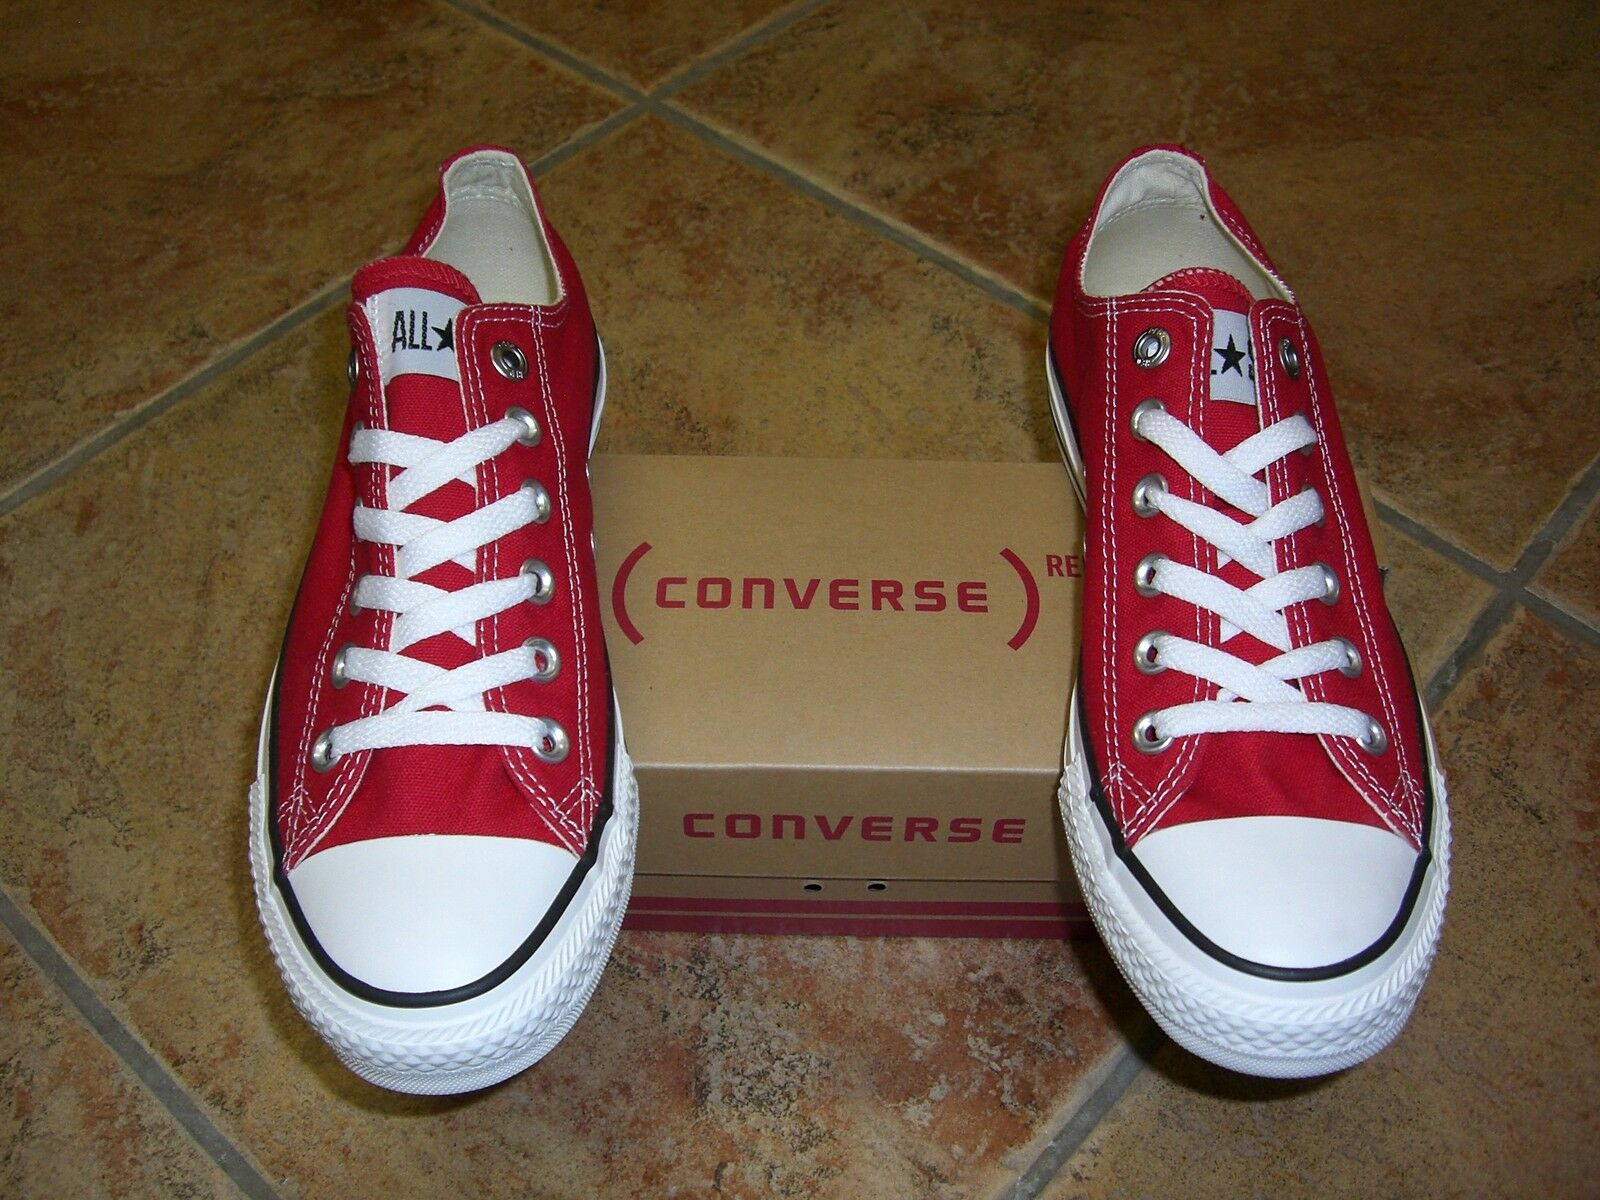 Converse  Chucks  All Star  OX  Gr.41  Red  Rot  M9696  Neu  mega angesagt